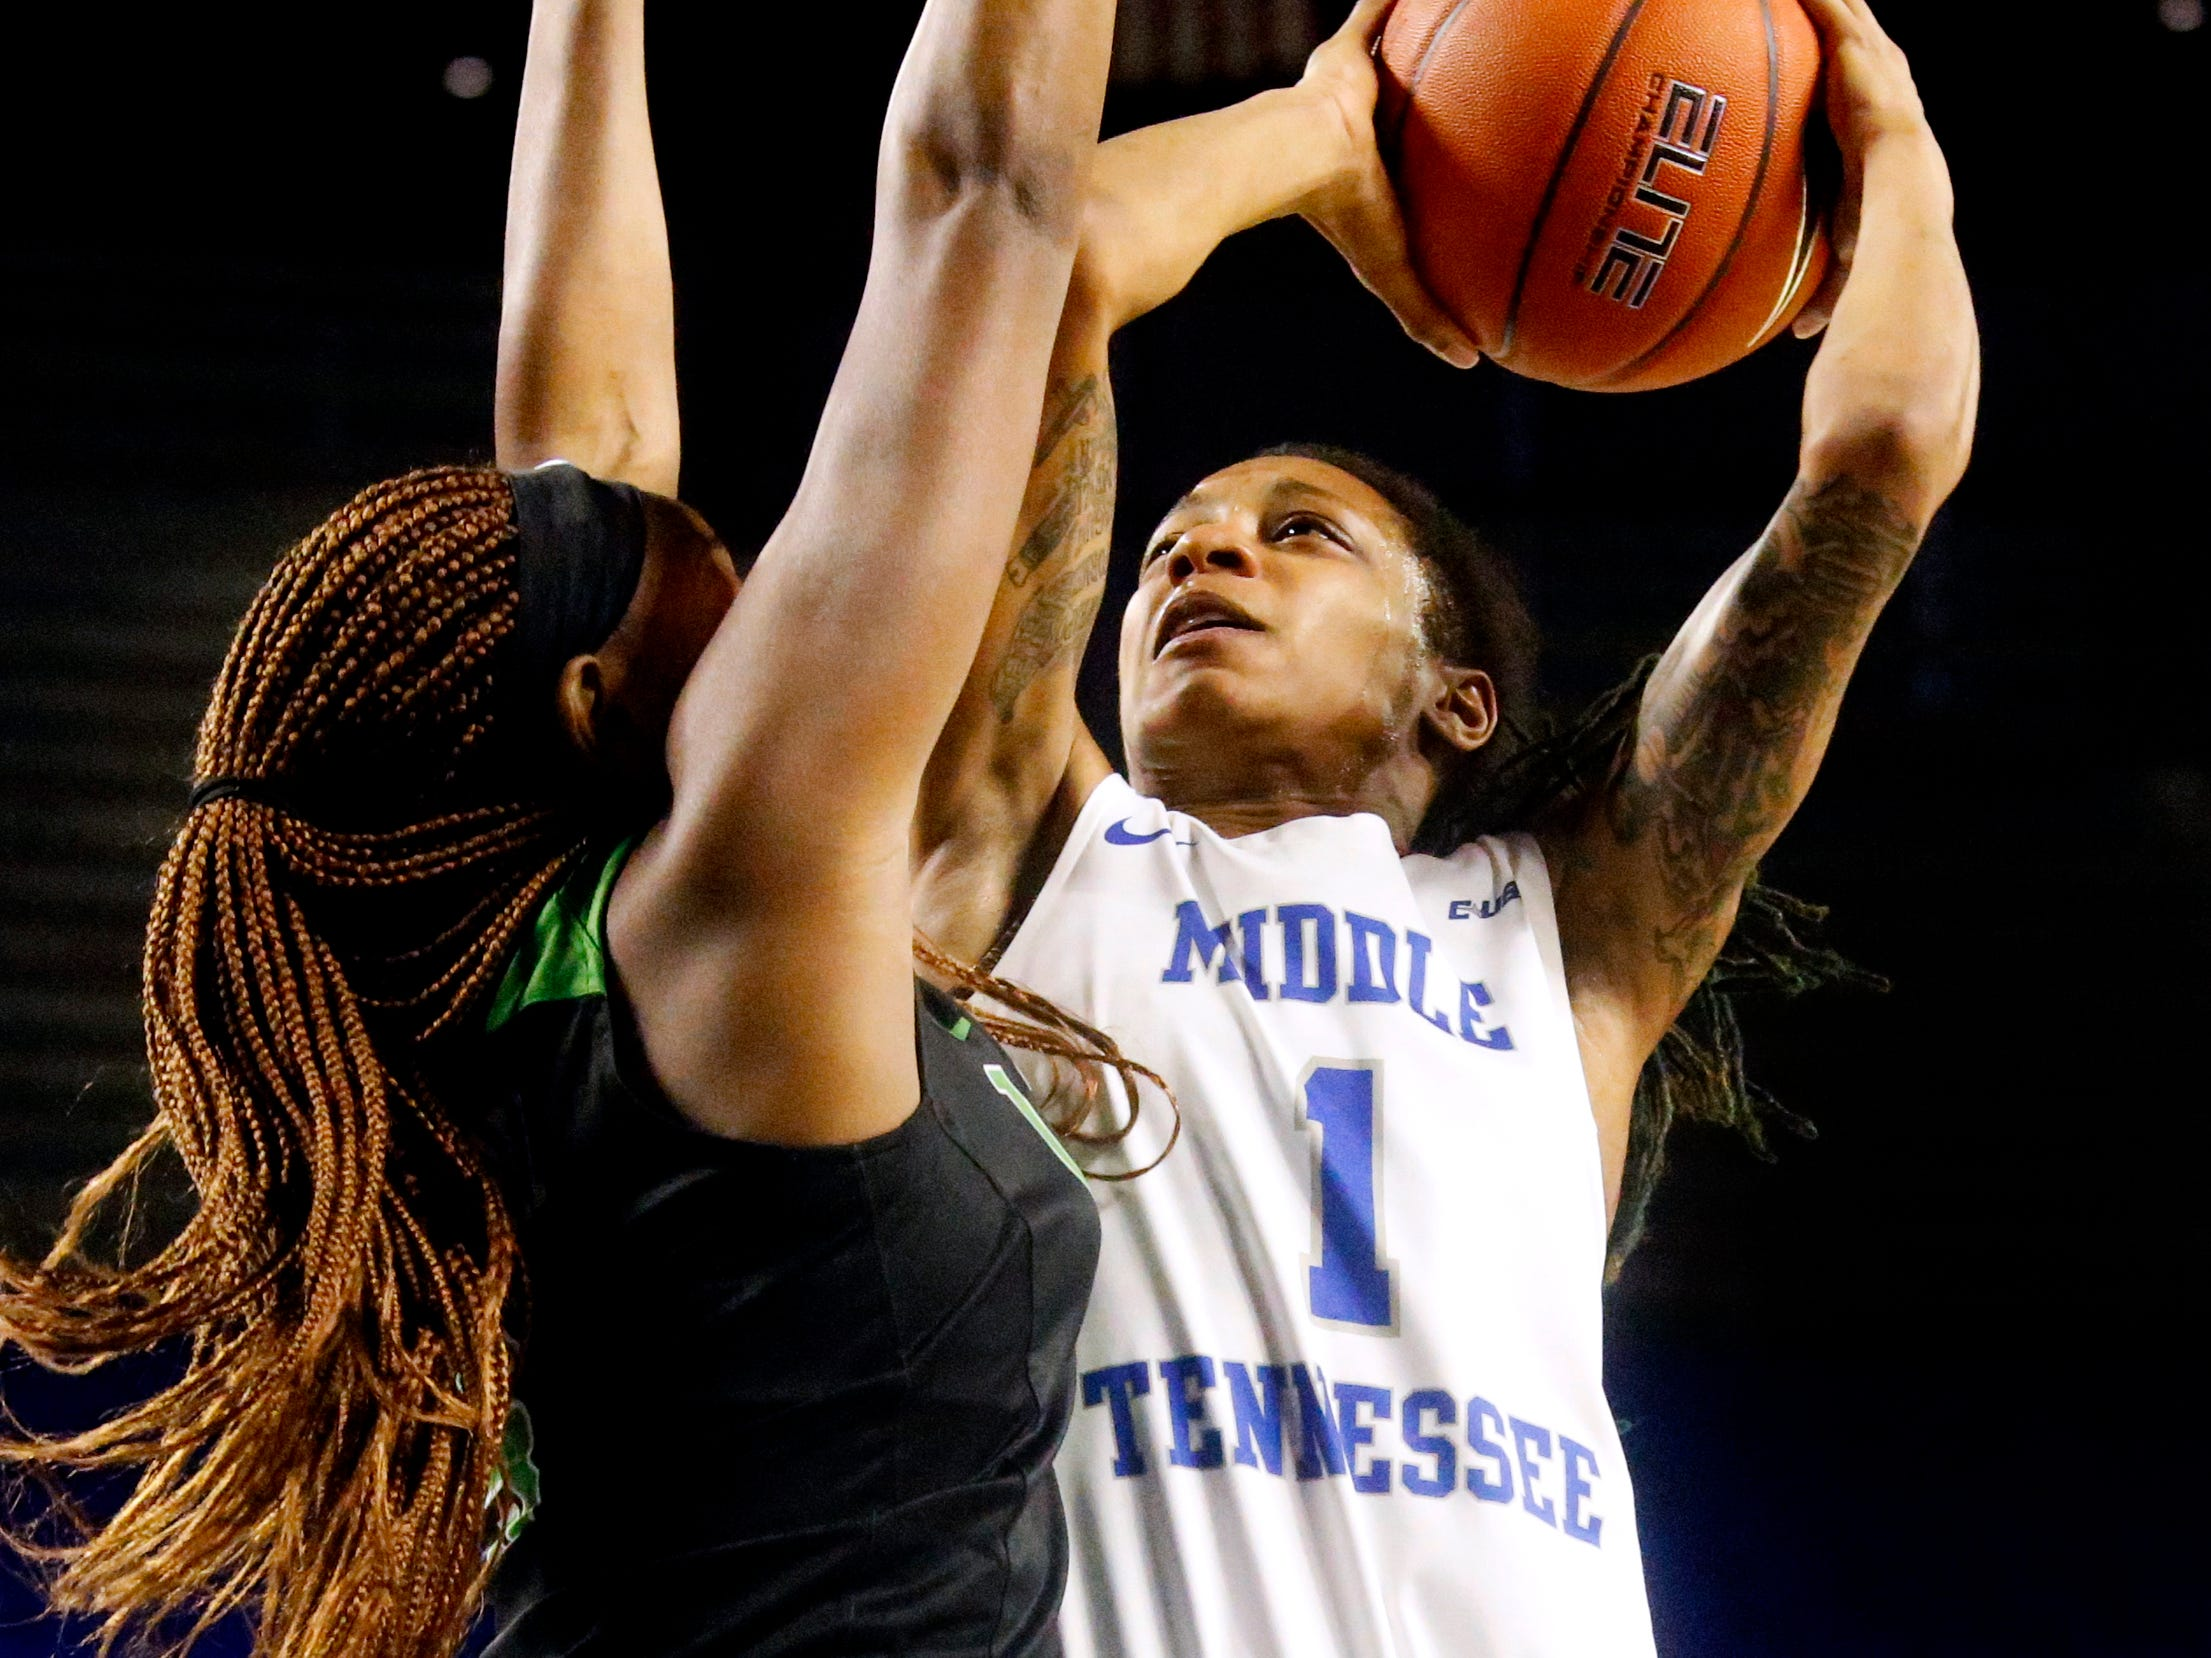 MTSU's guard A'Queen Hayes (1) shoots the ball as she I guarded by North Texas' guard Velma Mitchell (5) on Saturday Jan. 26, 2019.